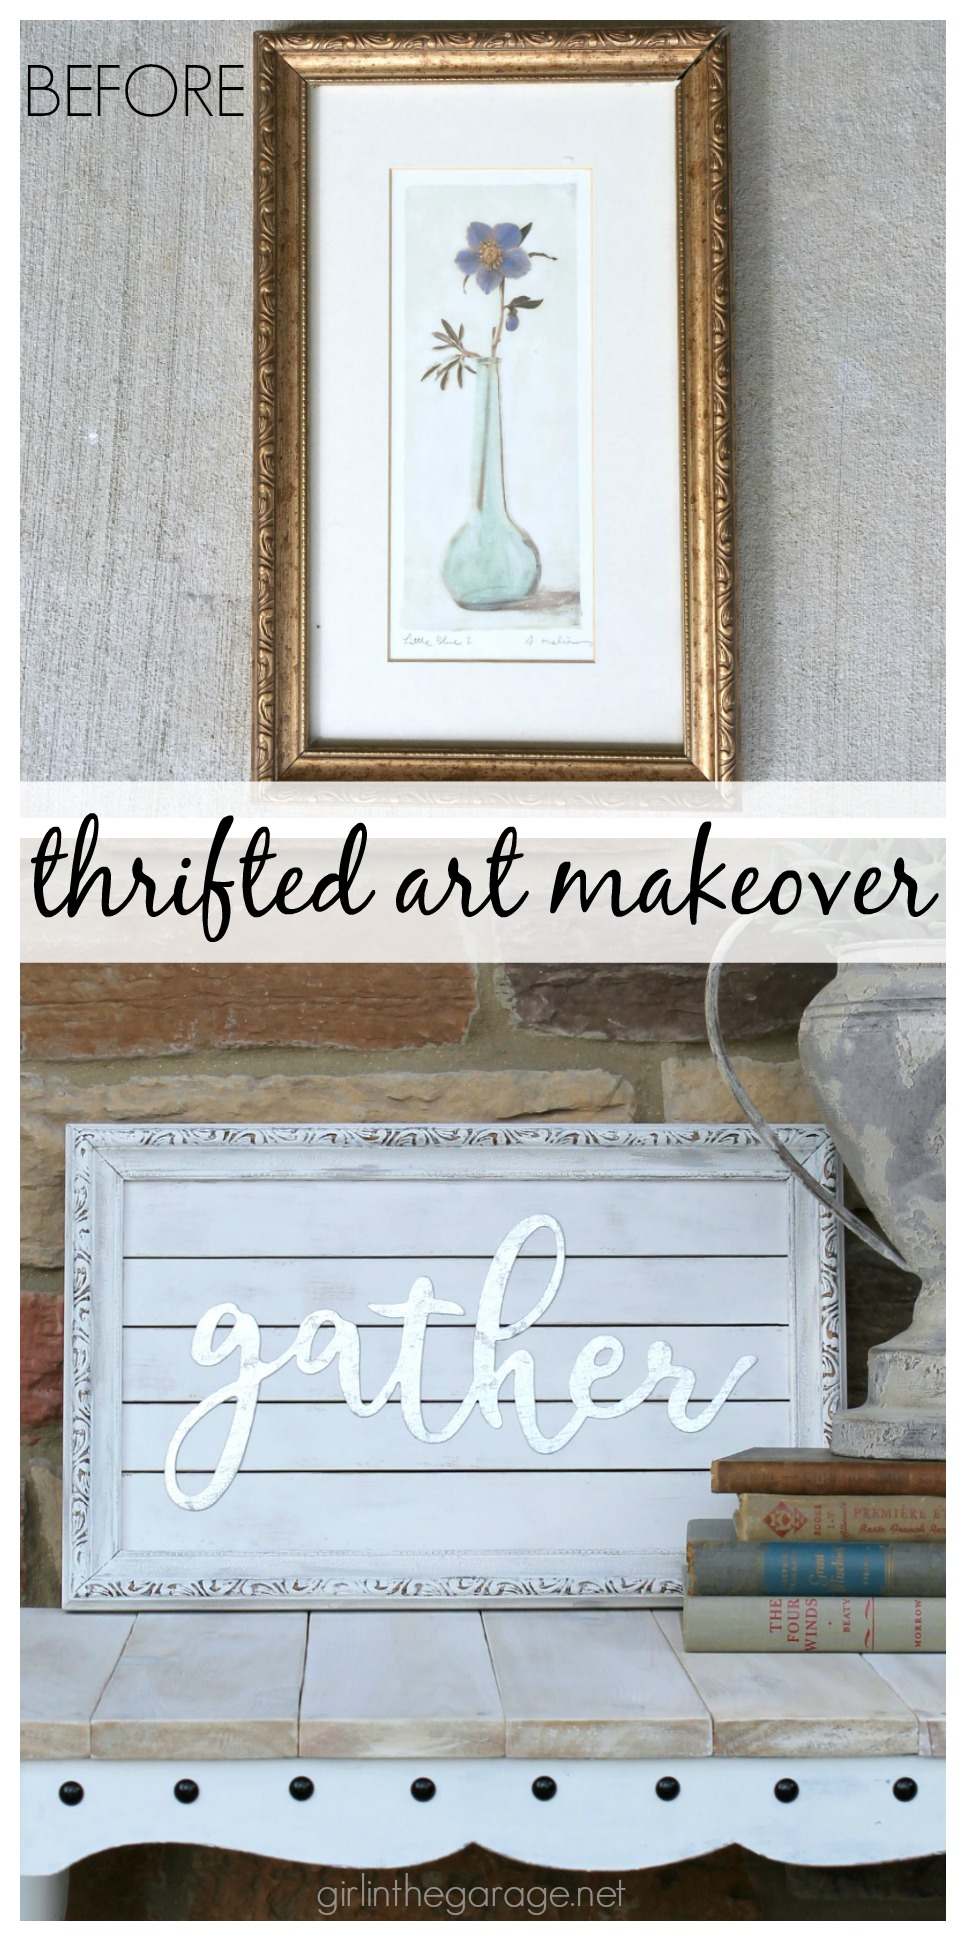 Thrifted art makeover repurposed into a planked Gather sign with farmhouse style. Easy DIY tutorial by Girl in the Garage.